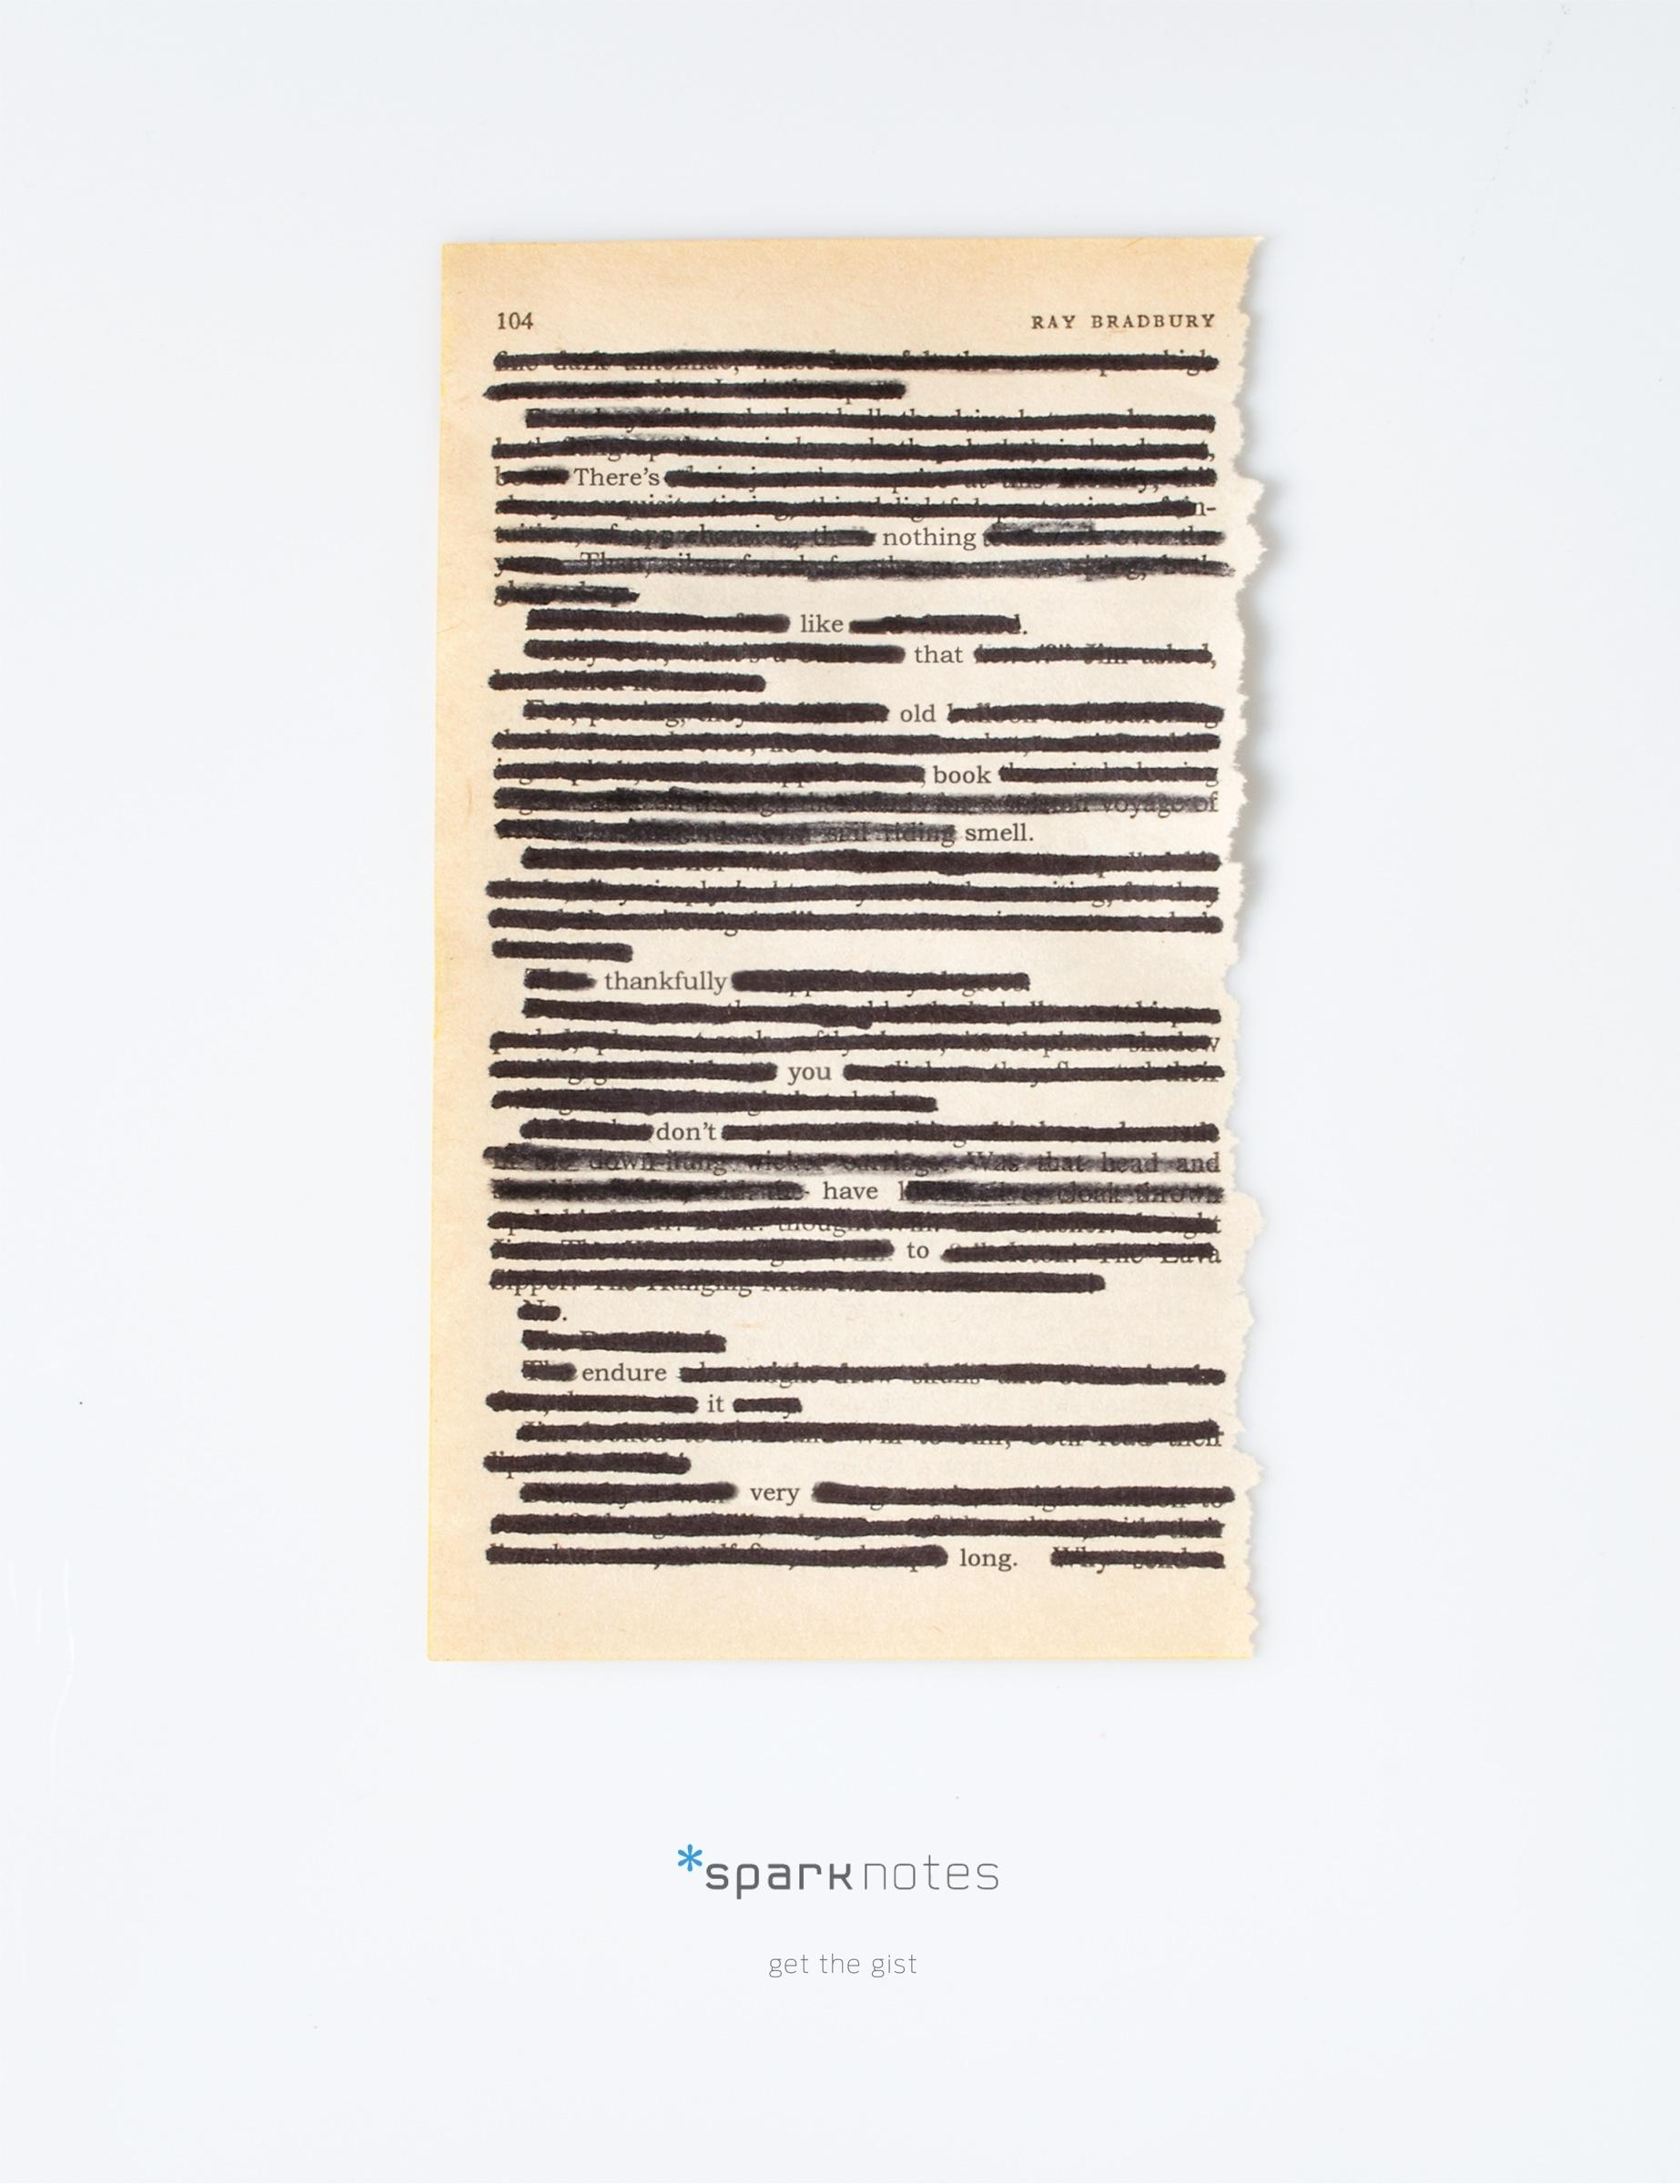 SparkNotes Print Ad -  Get the gist, 1